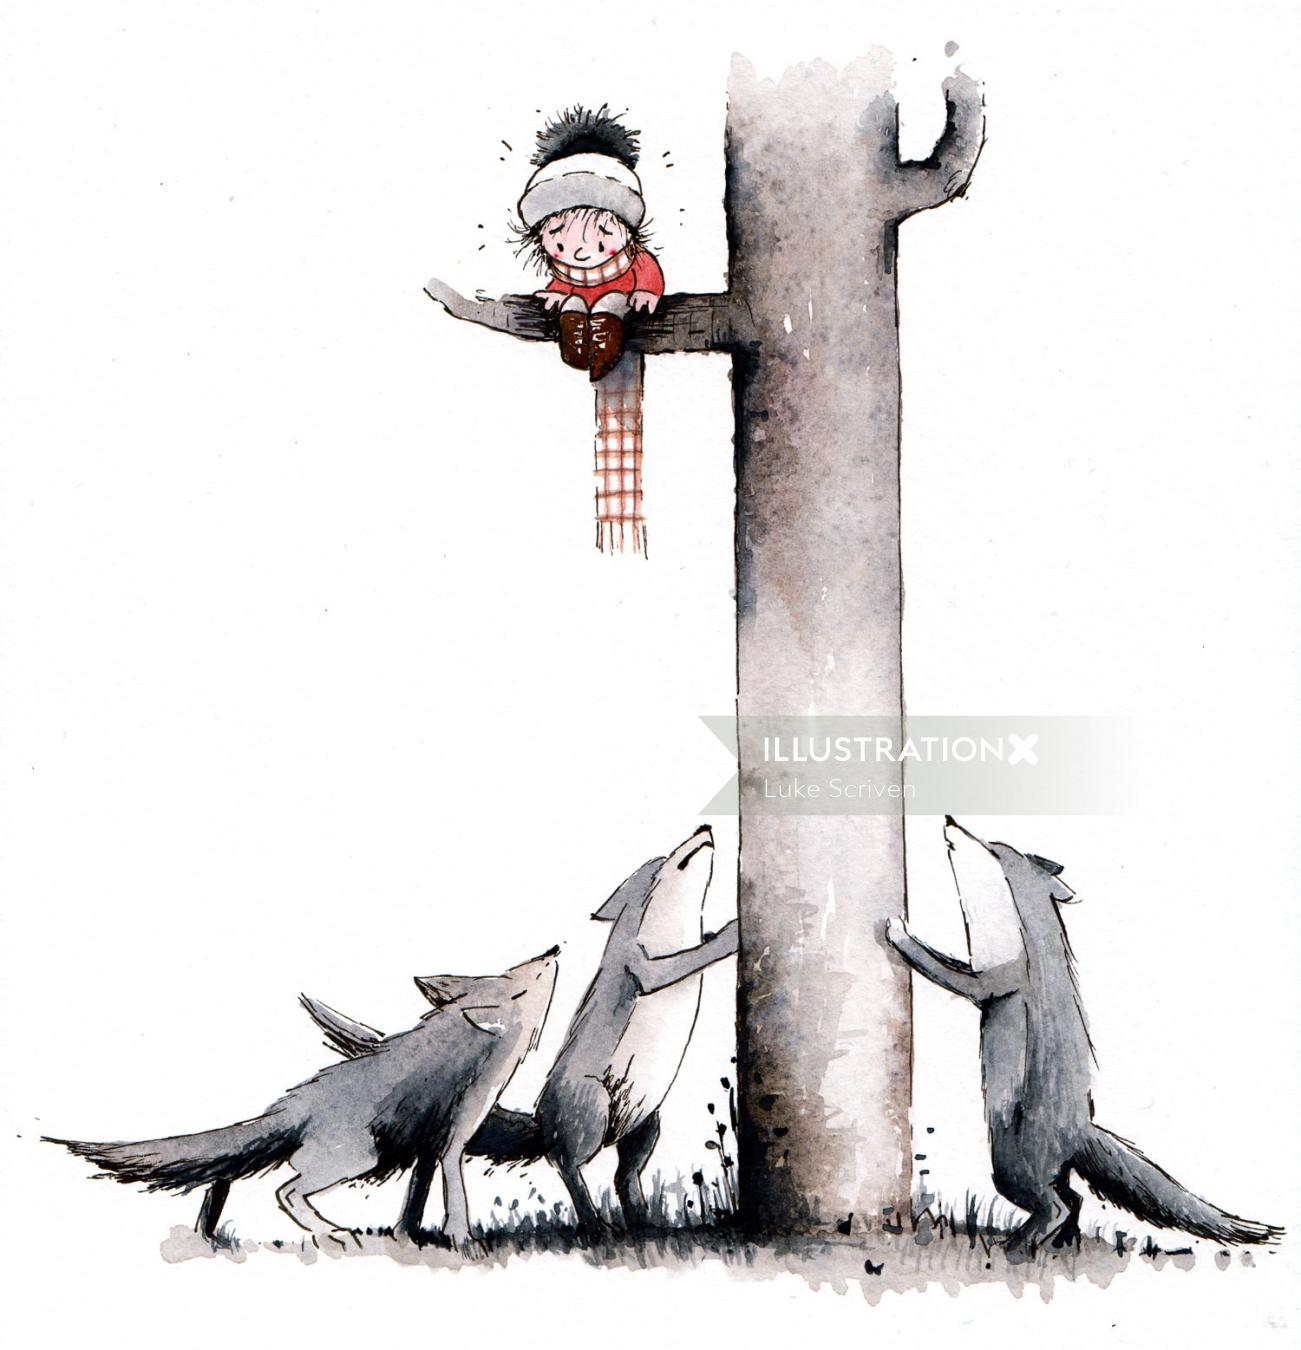 Child on tree branch surrounded by wolves